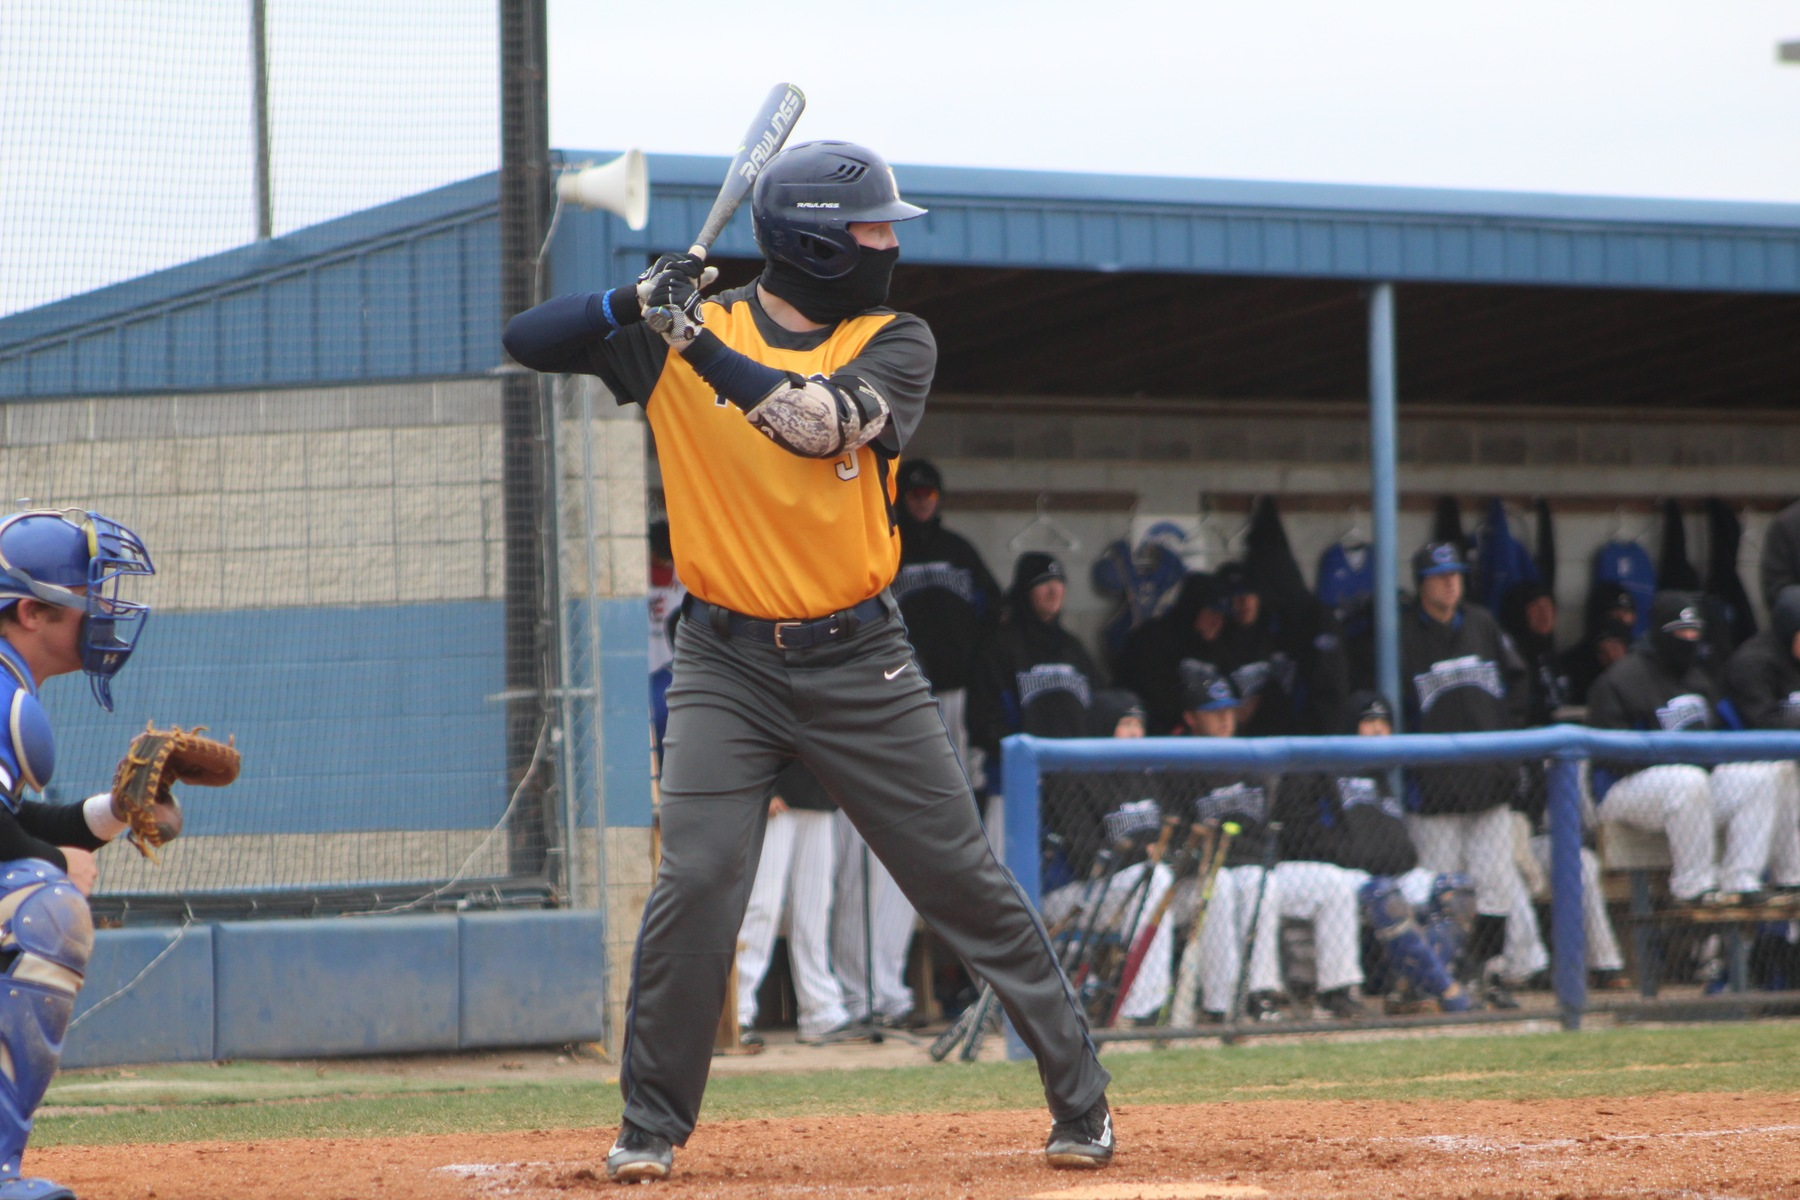 The MCC baseball team fell to Crowder College 13-5 on Monday afternoon